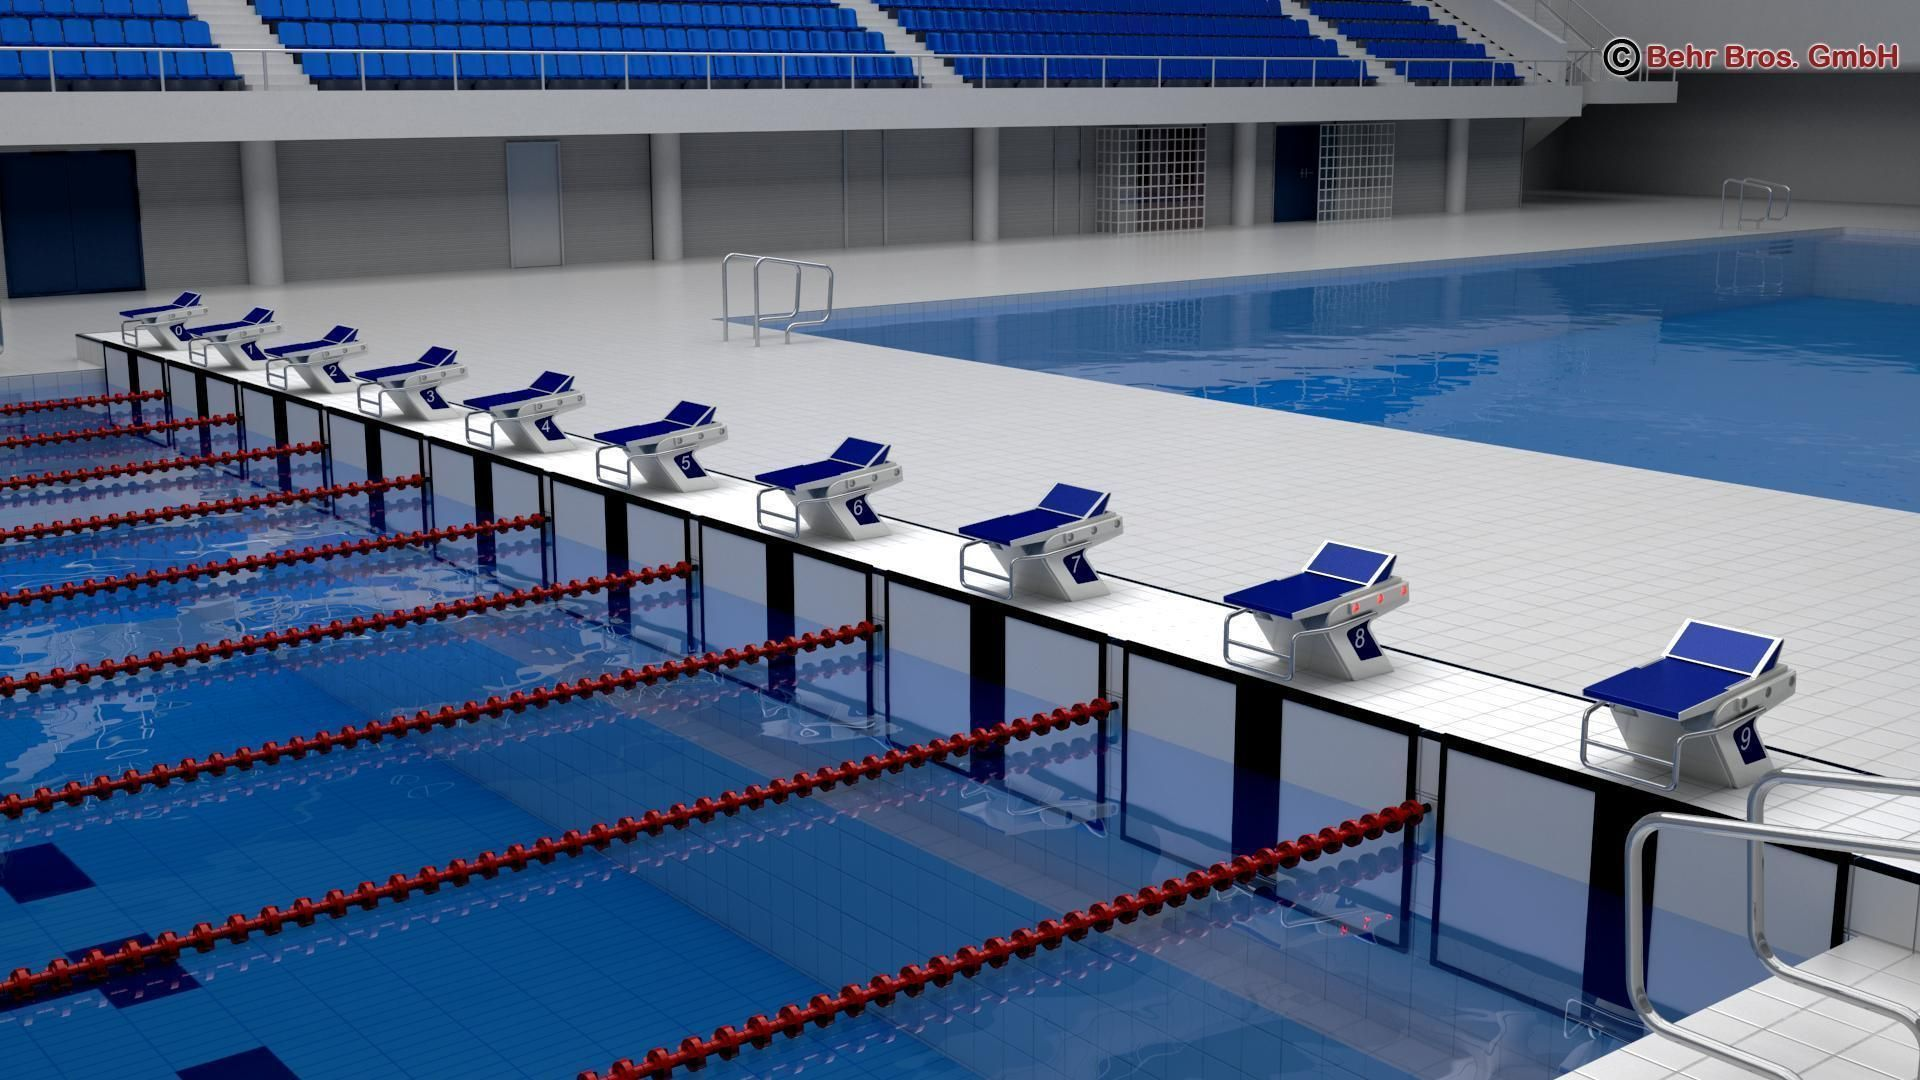 swim stadium 3d model max obj 3ds fbx c4d lwo lw lws 4